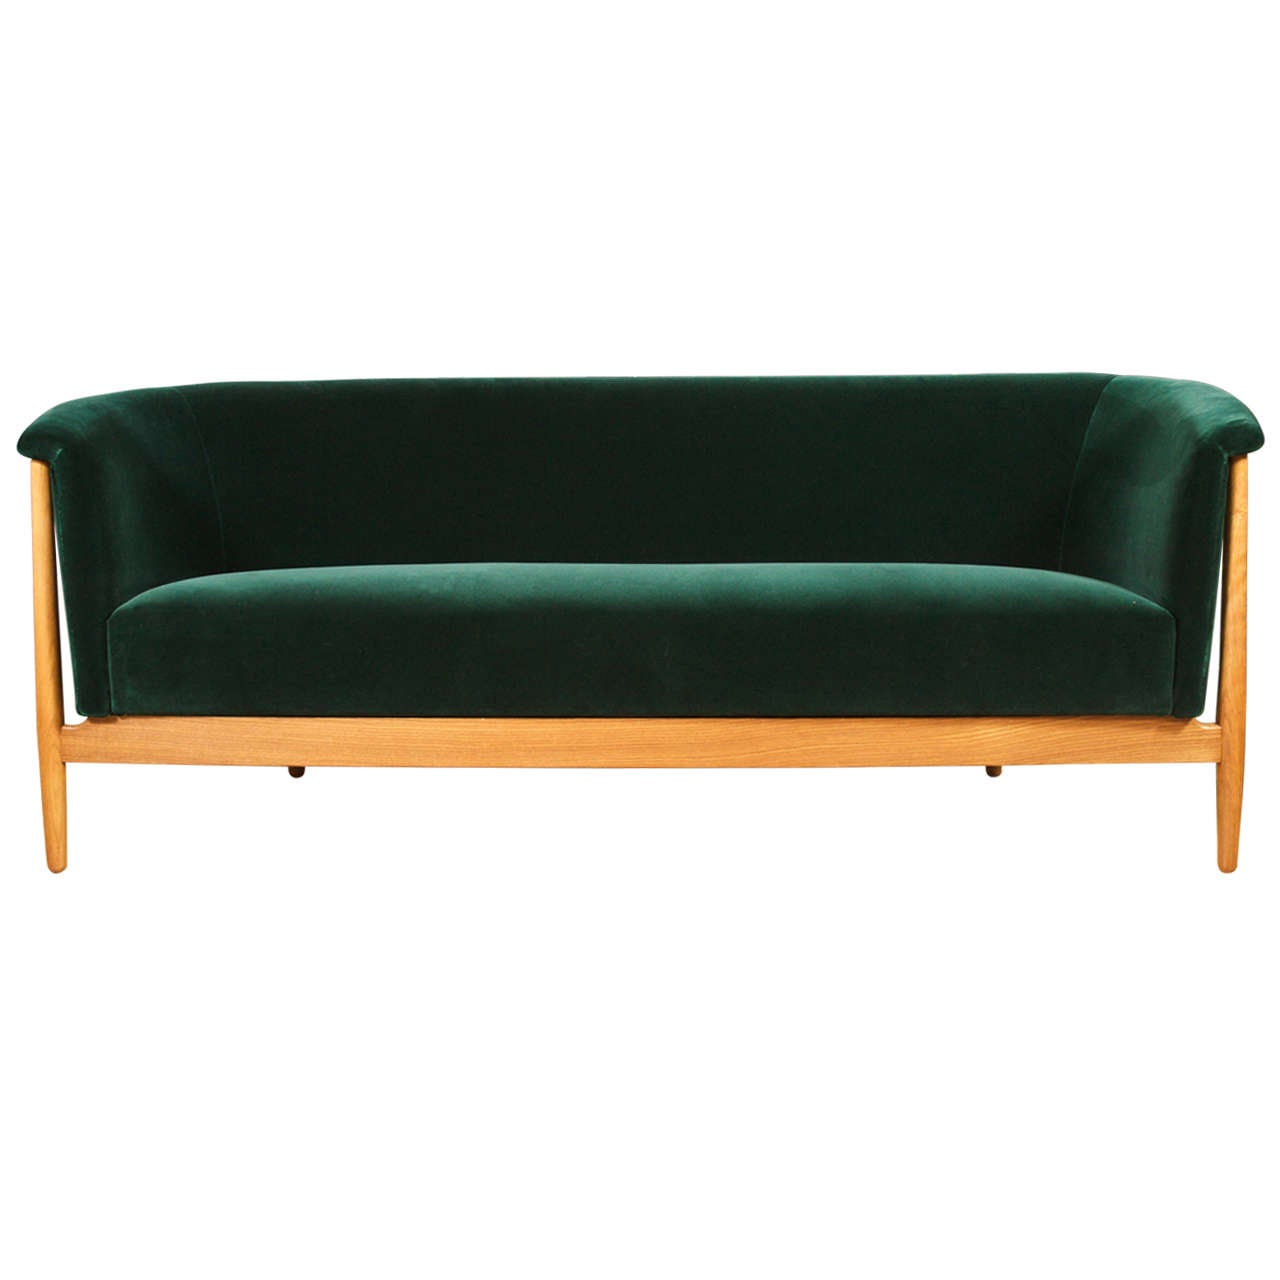 Nanna ditzel curved arm sofa at 1stdibs for Sofa with only one arm